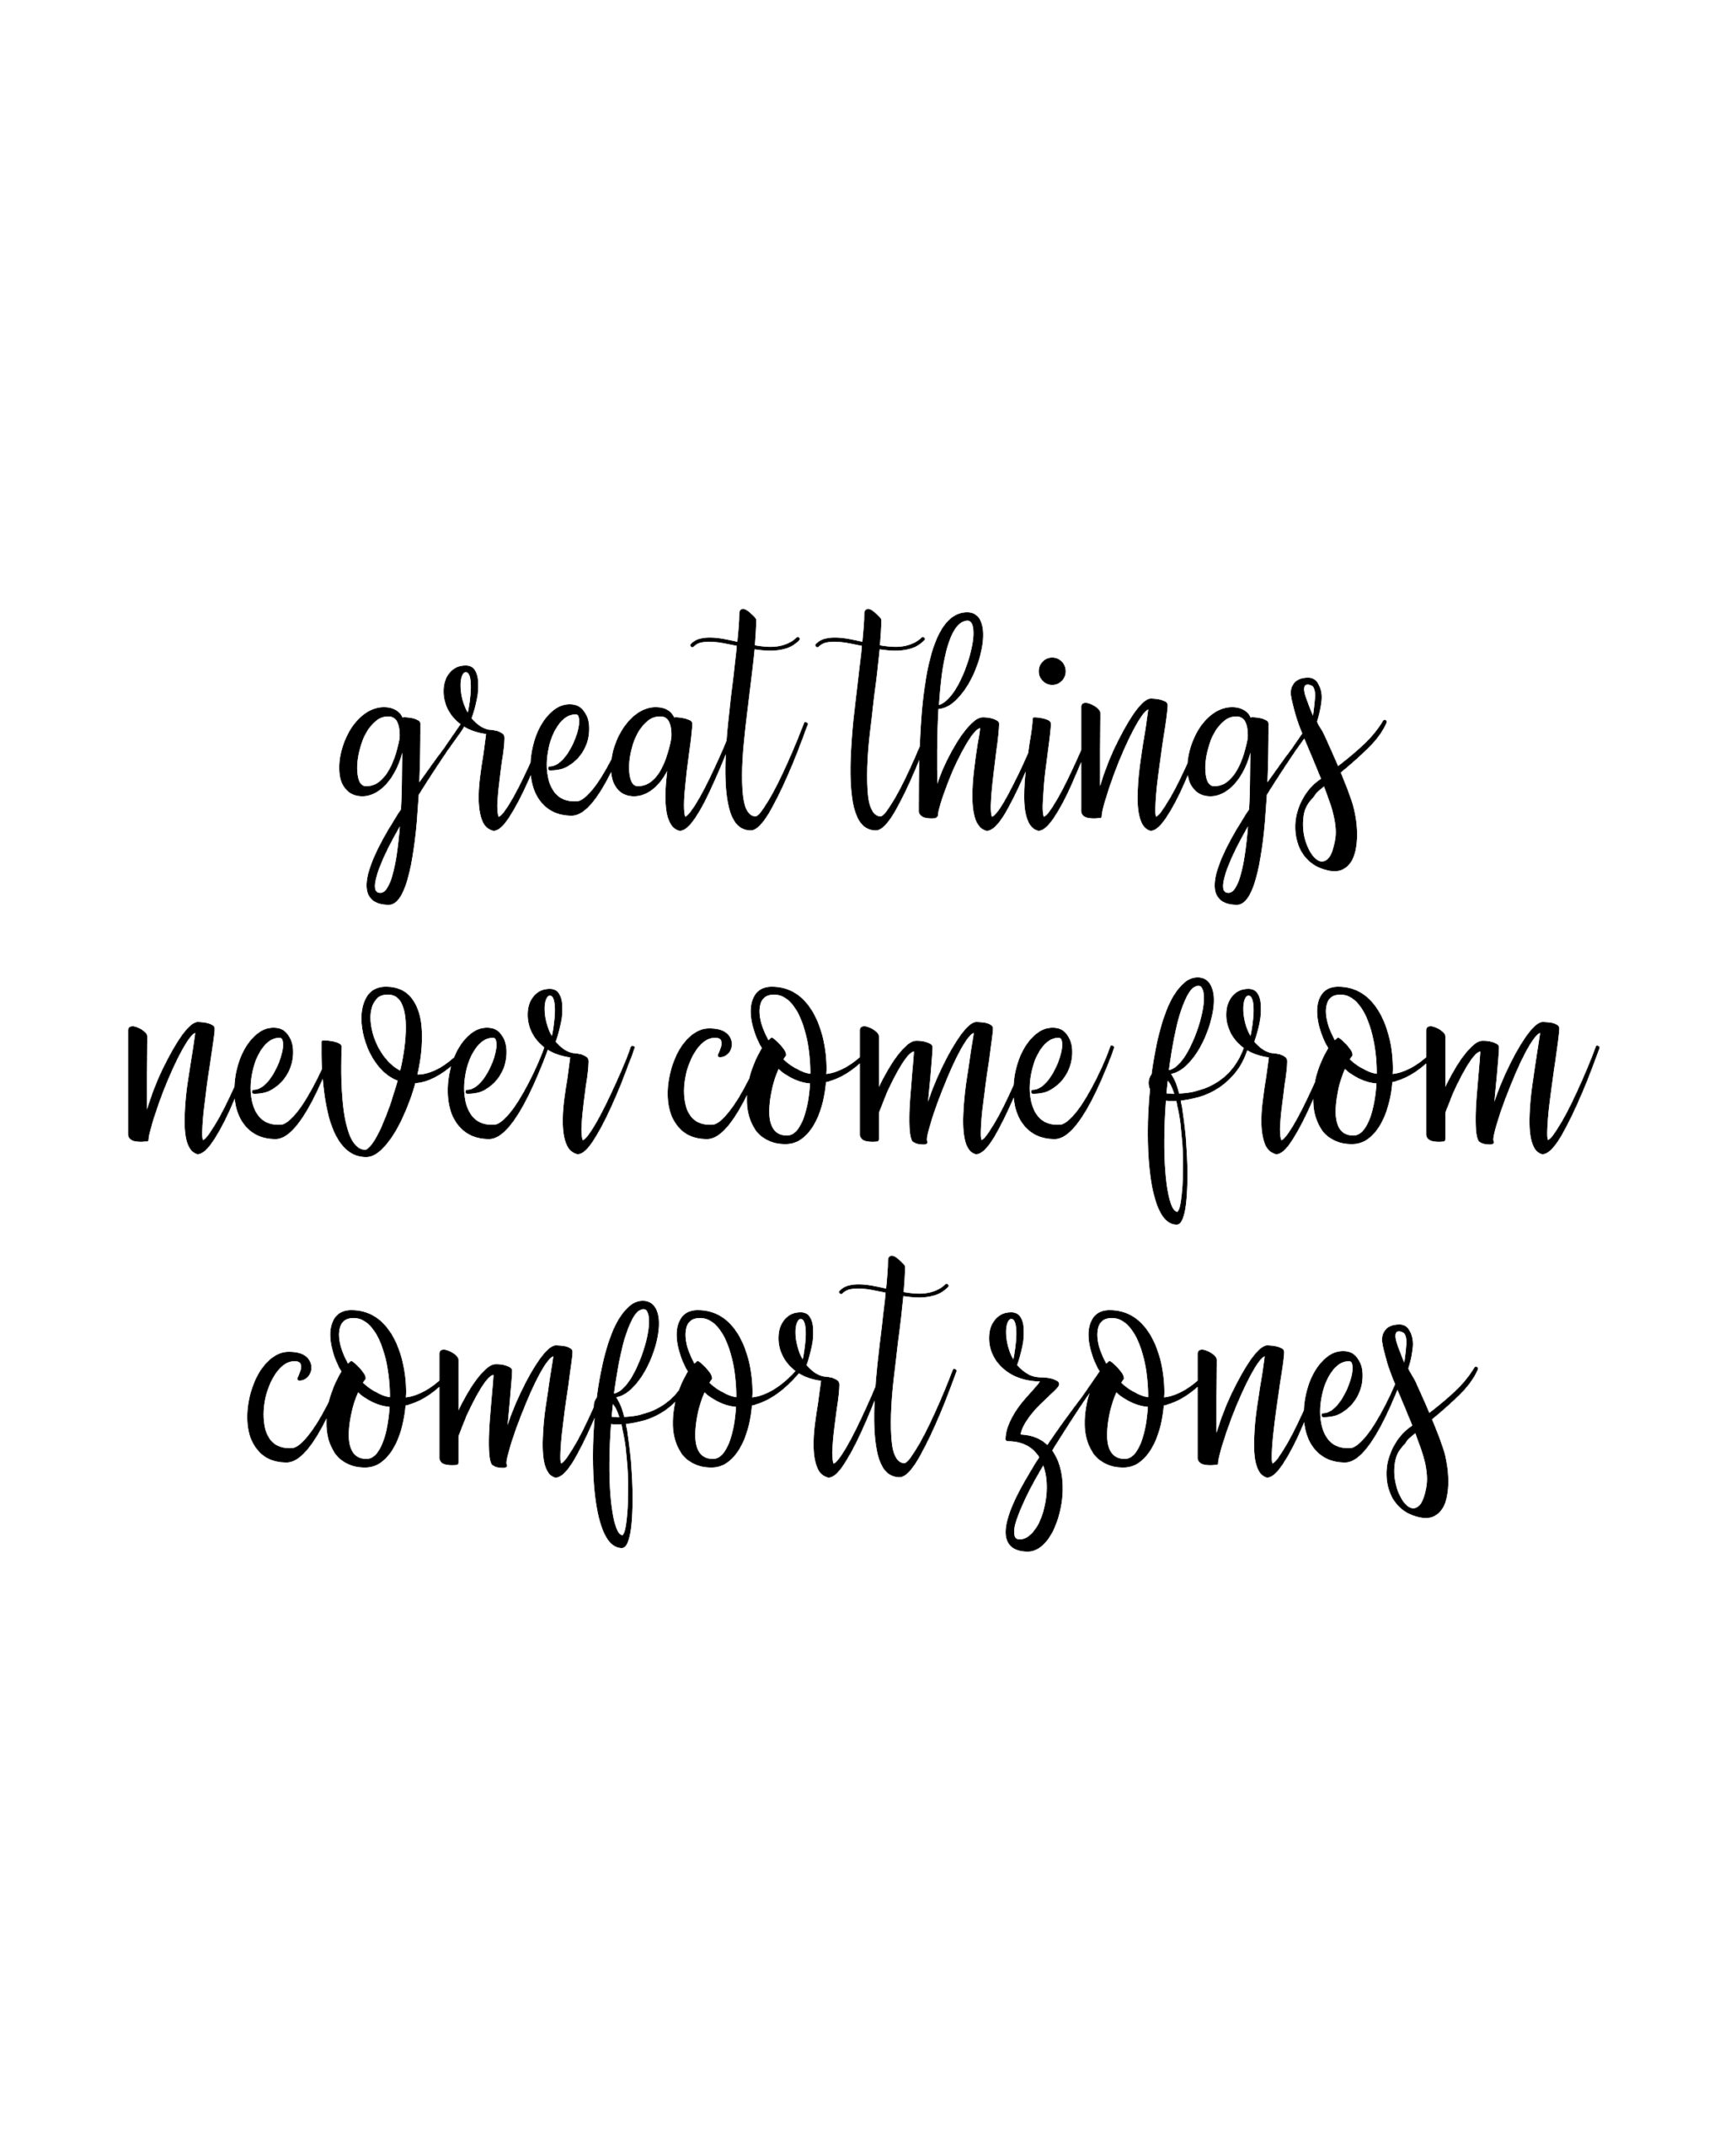 Greate things never come from comfort zones